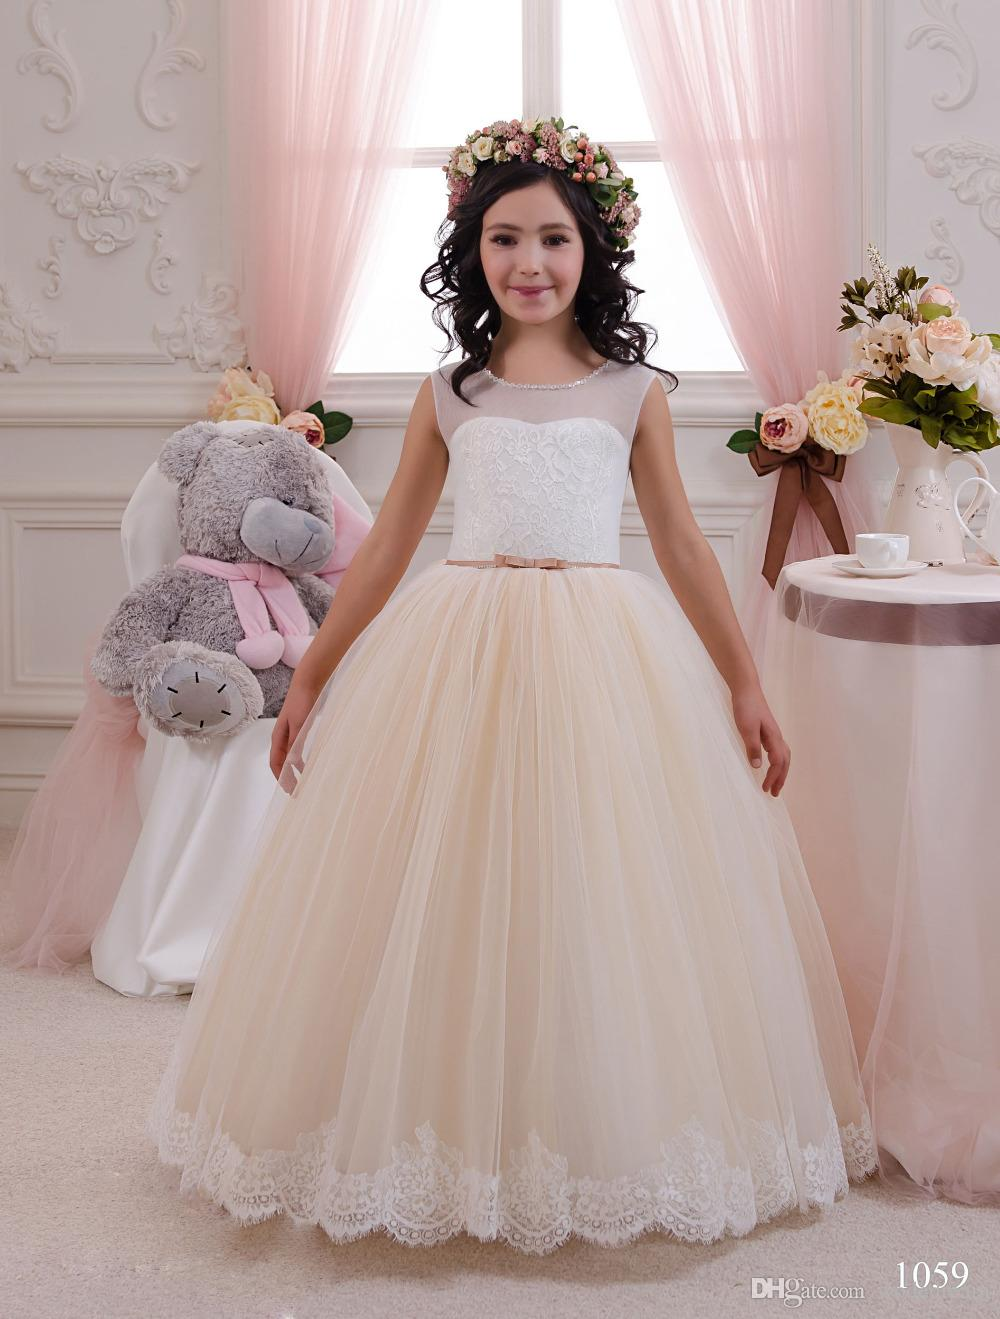 2018 new champagne flower girl dresses sheer coral bow sashes 2018 new champagne flower girl dresses sheer coral bow sashes vestidos de comunion para ninas flower girl dress second hand flower girl dresses silk flower mightylinksfo